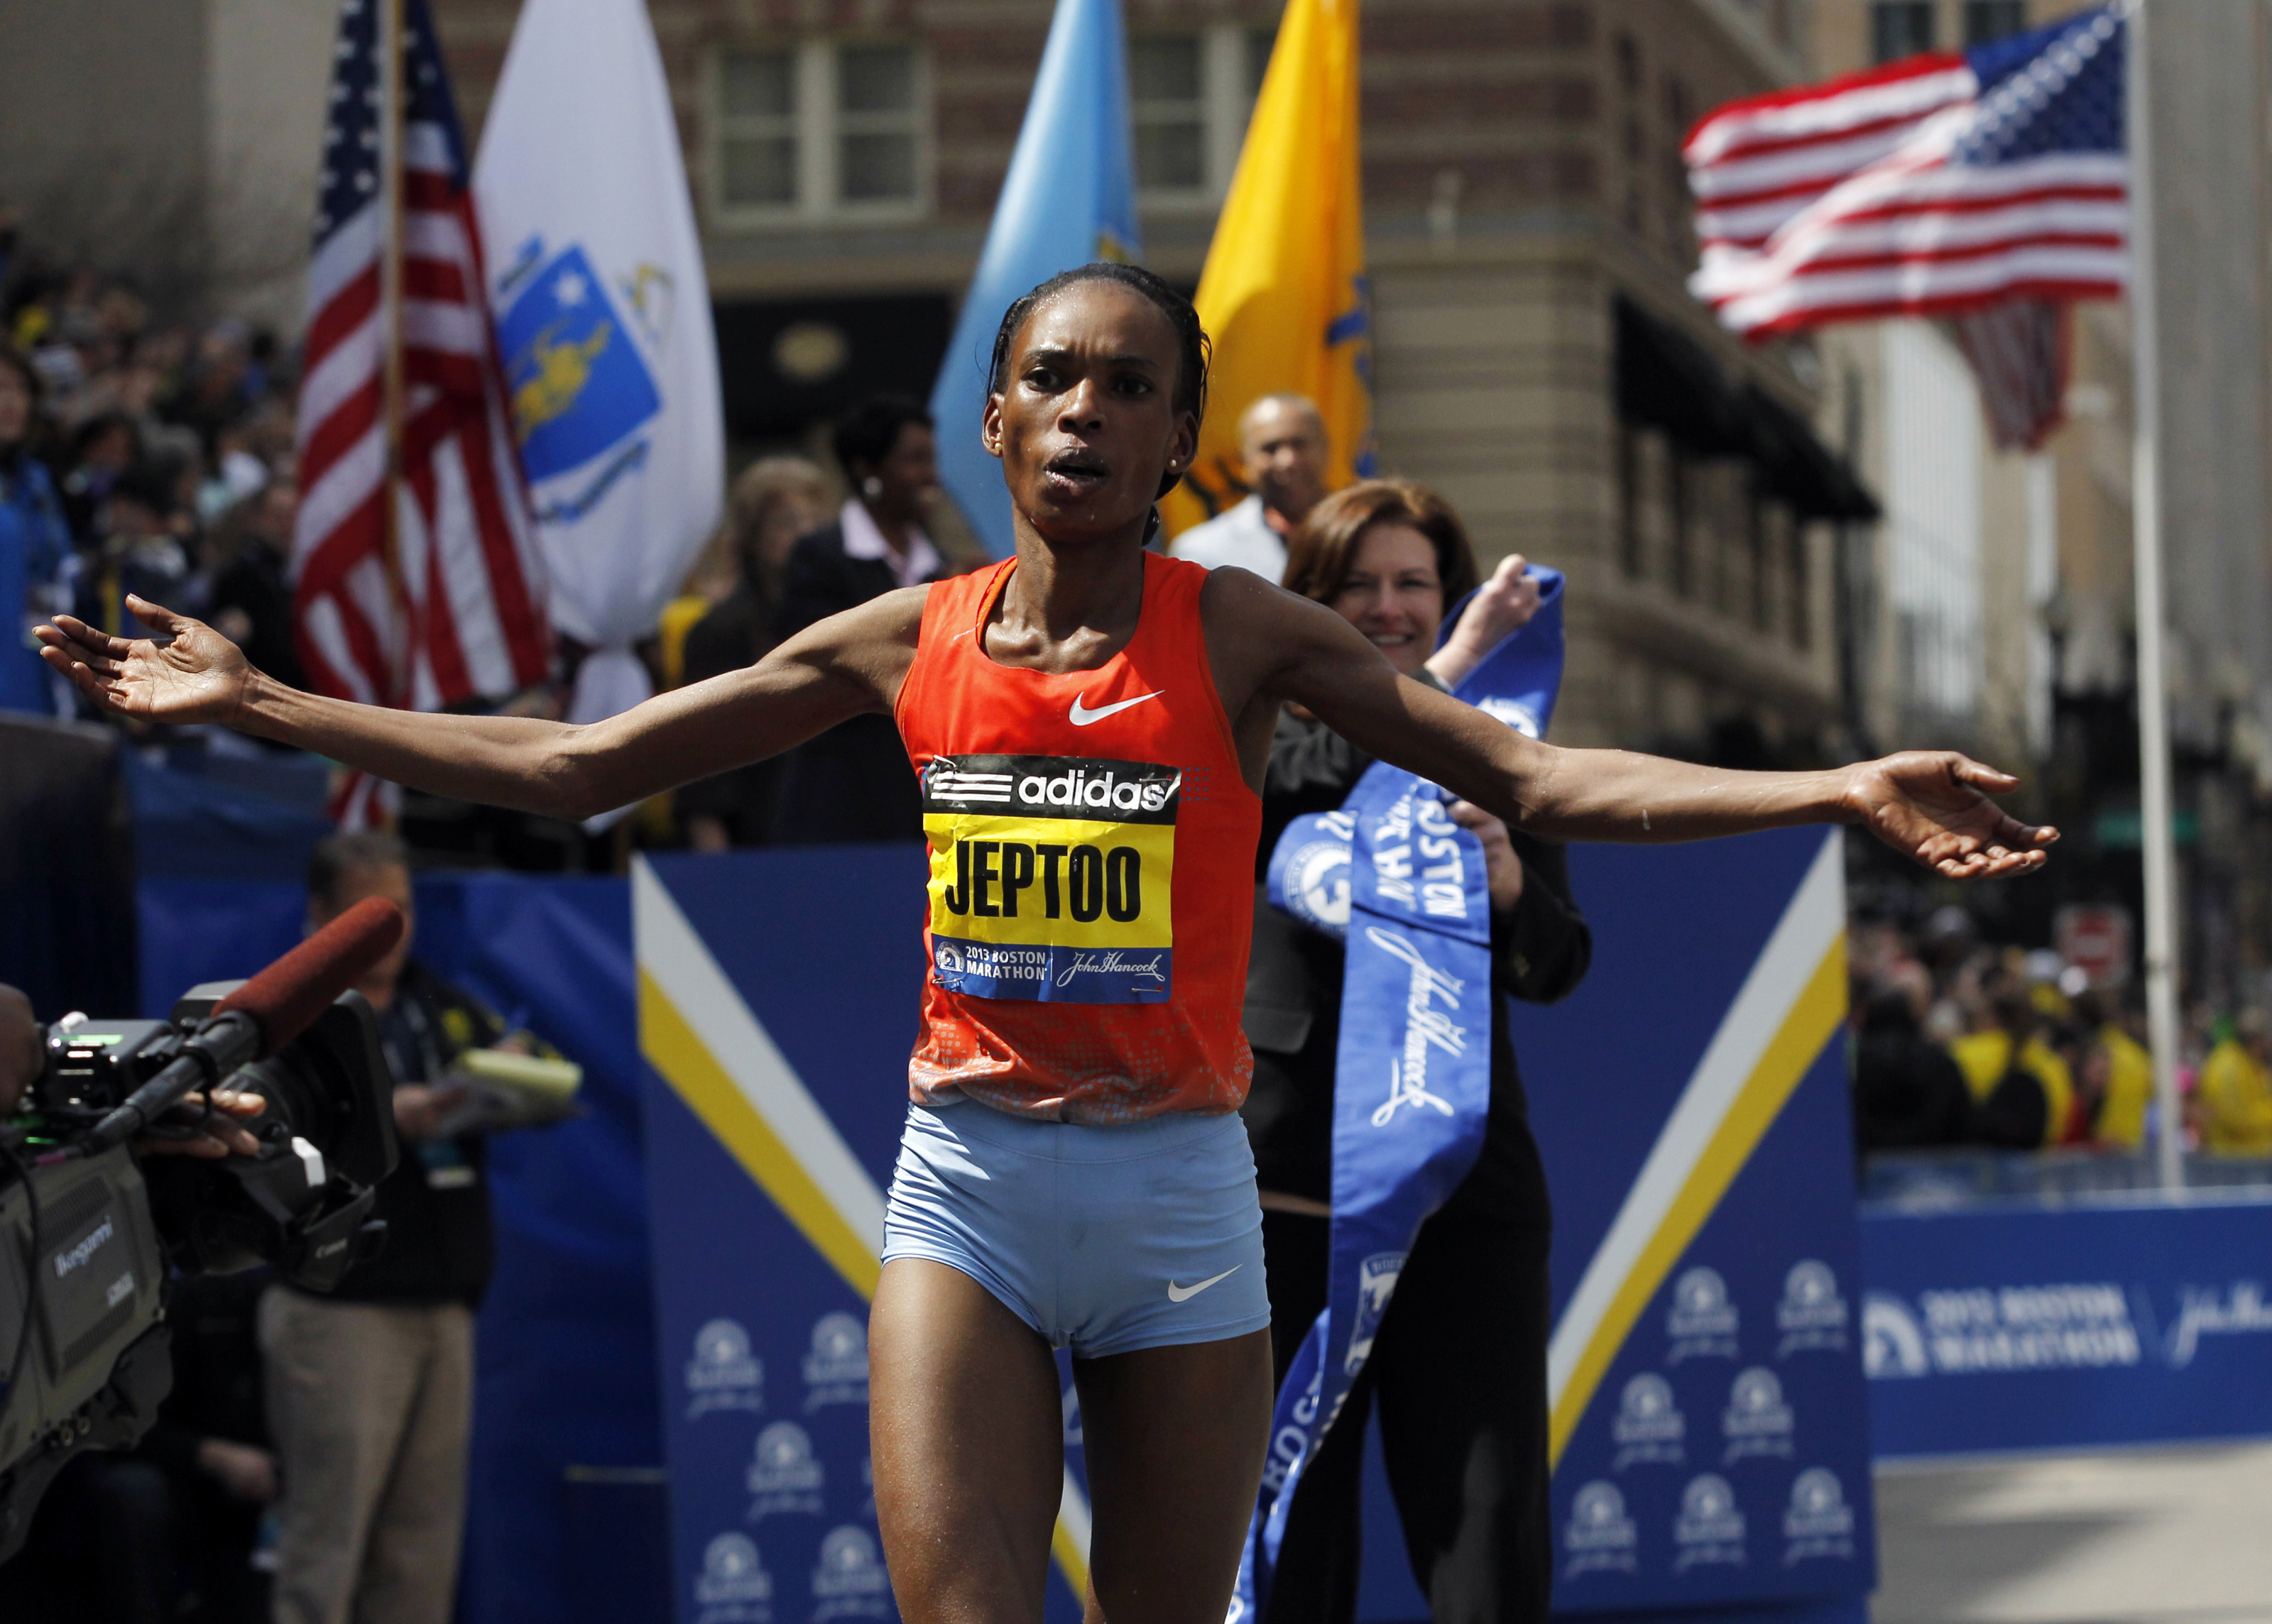 Rita Jeptoo of Kenya reacts after crossing the finish line to win the women's division of the 117th Boston Marathon in Boston, Massachusetts April 15, 2013.